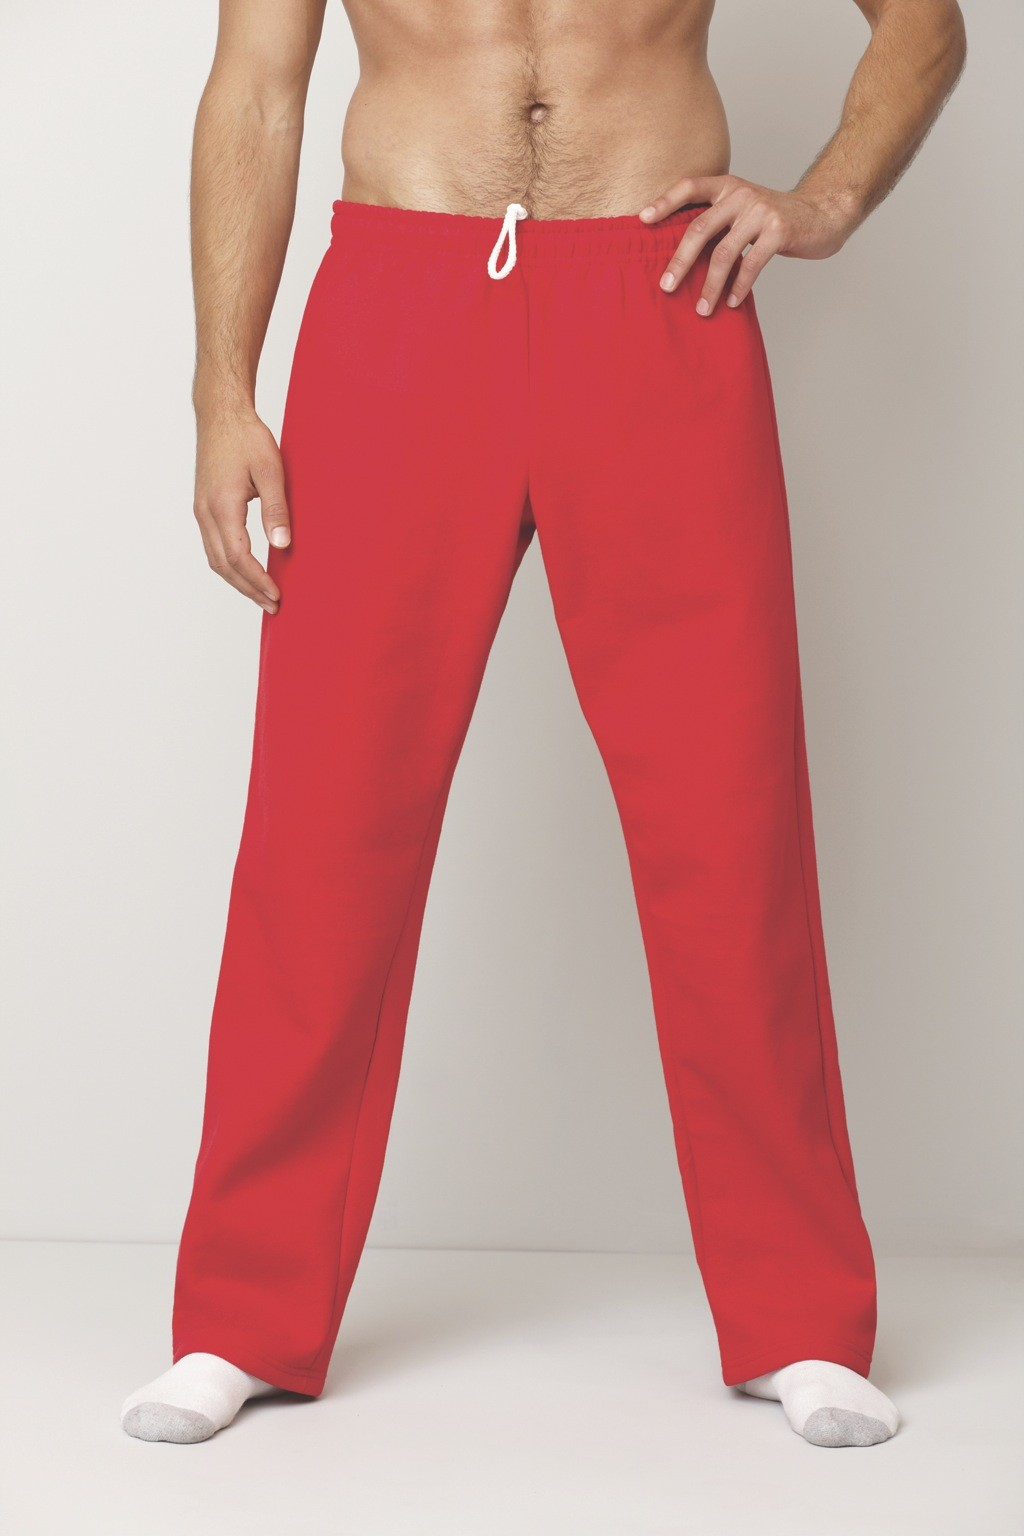 Heavy Blend Open Bottom Sweatpant for him 18400, Gildan